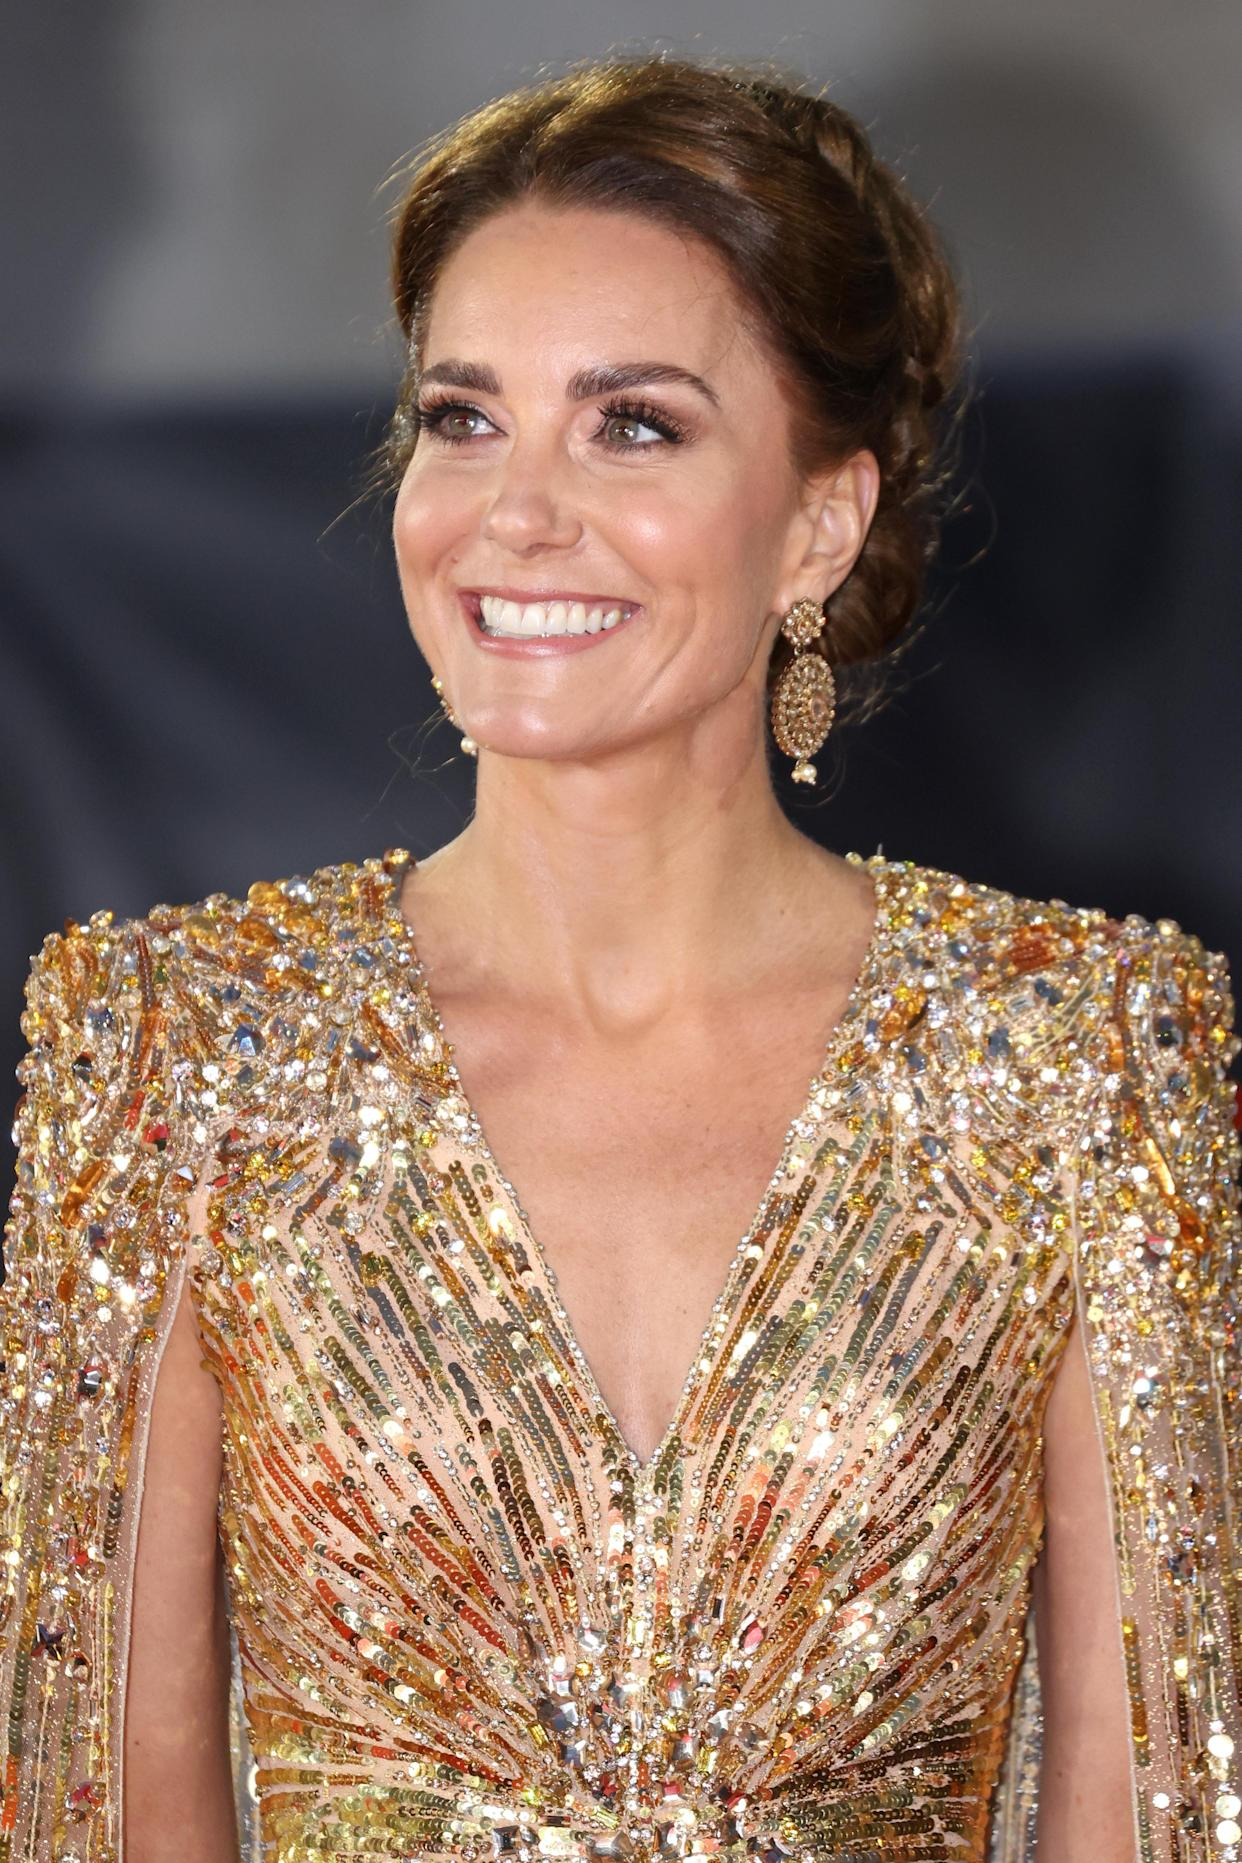 The mum-of-three finished off the look with matching embellished gold earrings and a chic updo. (Getty Images)